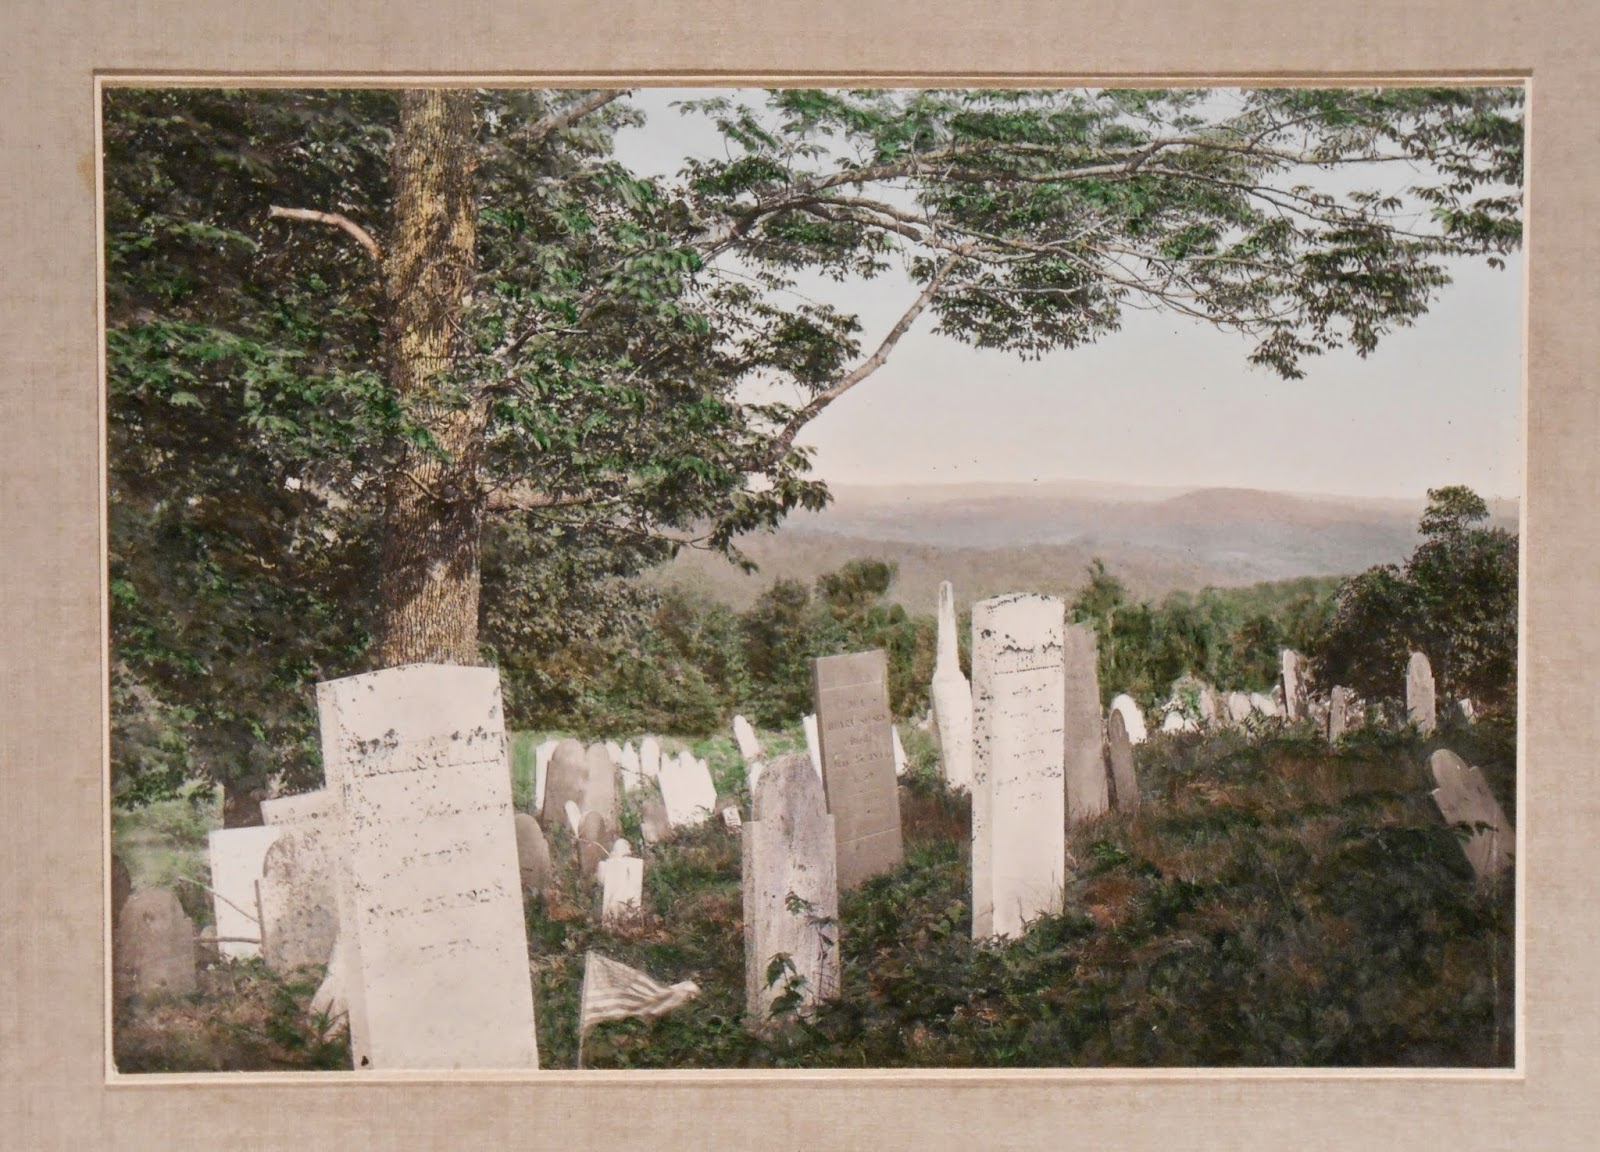 A color photograph of a graveyard.